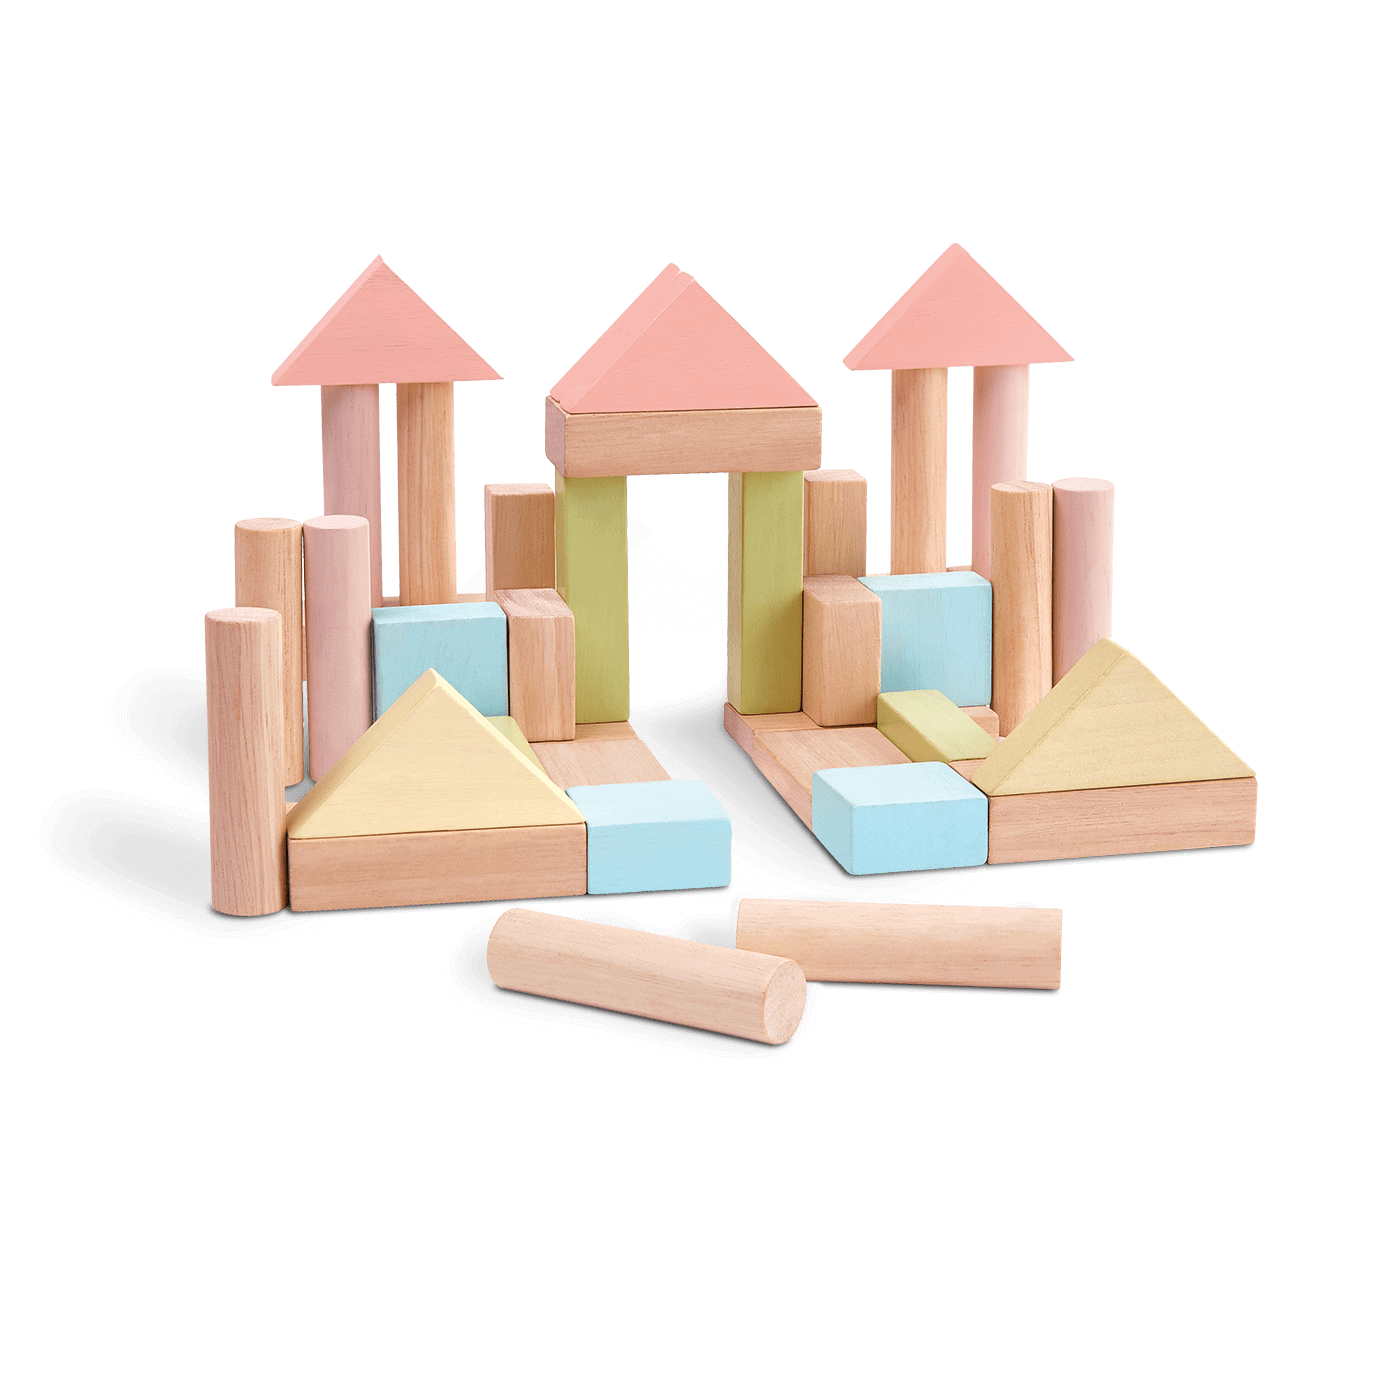 5507_PlanToys_40_UNIT_BLOCKS_Blocks_and_Construction_Creative_Coordination_Language_and_Communications_Social_Fine_Motor_2yrs_Wooden_toys_Education_toys_Safety_Toys_Non-toxic_0.png